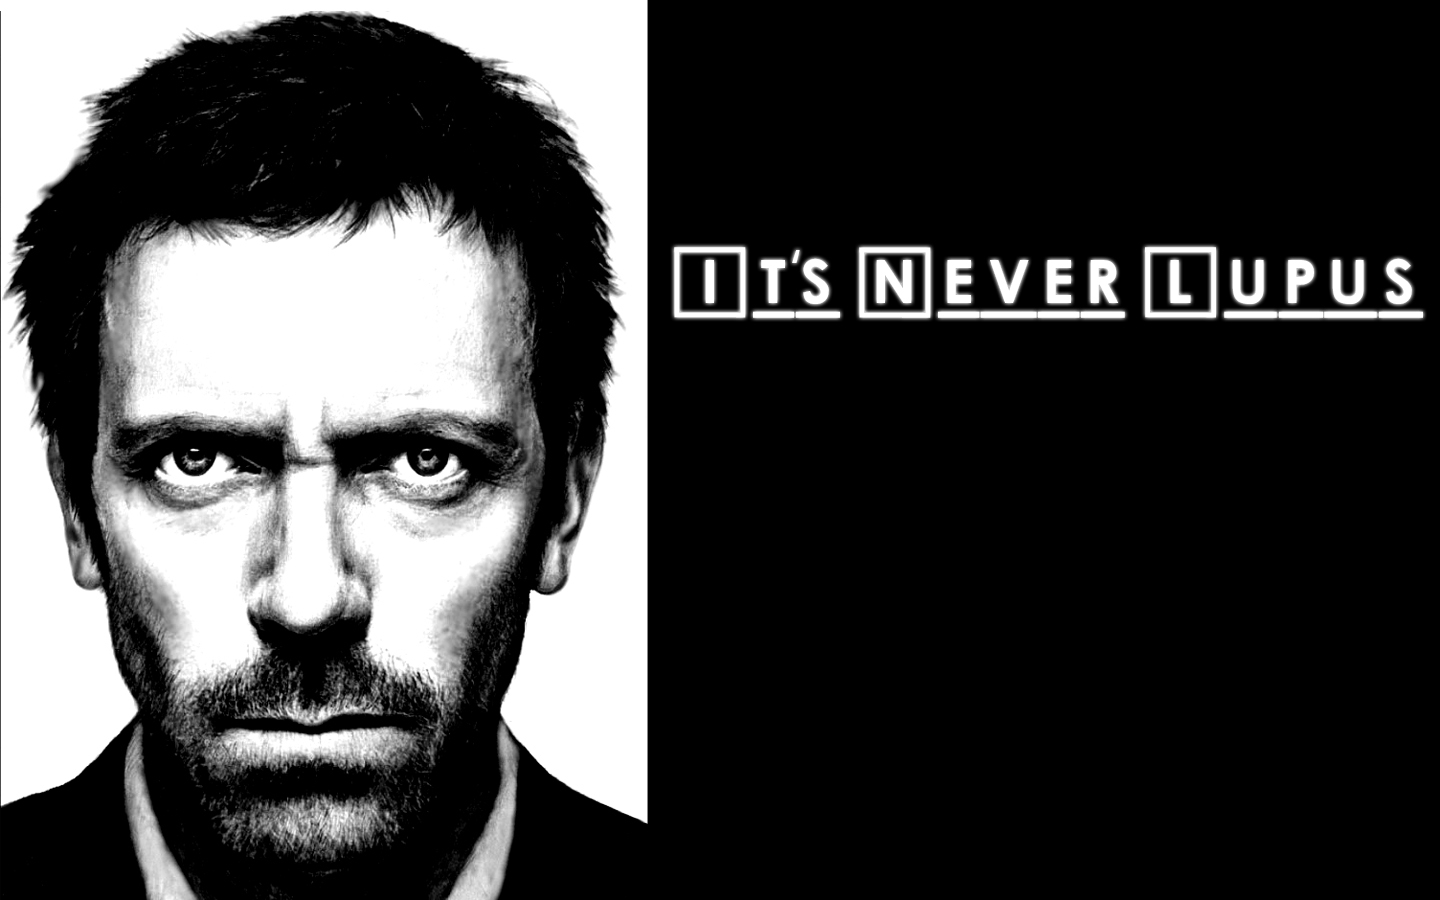 house-wallpaper-never-lupus.jpg